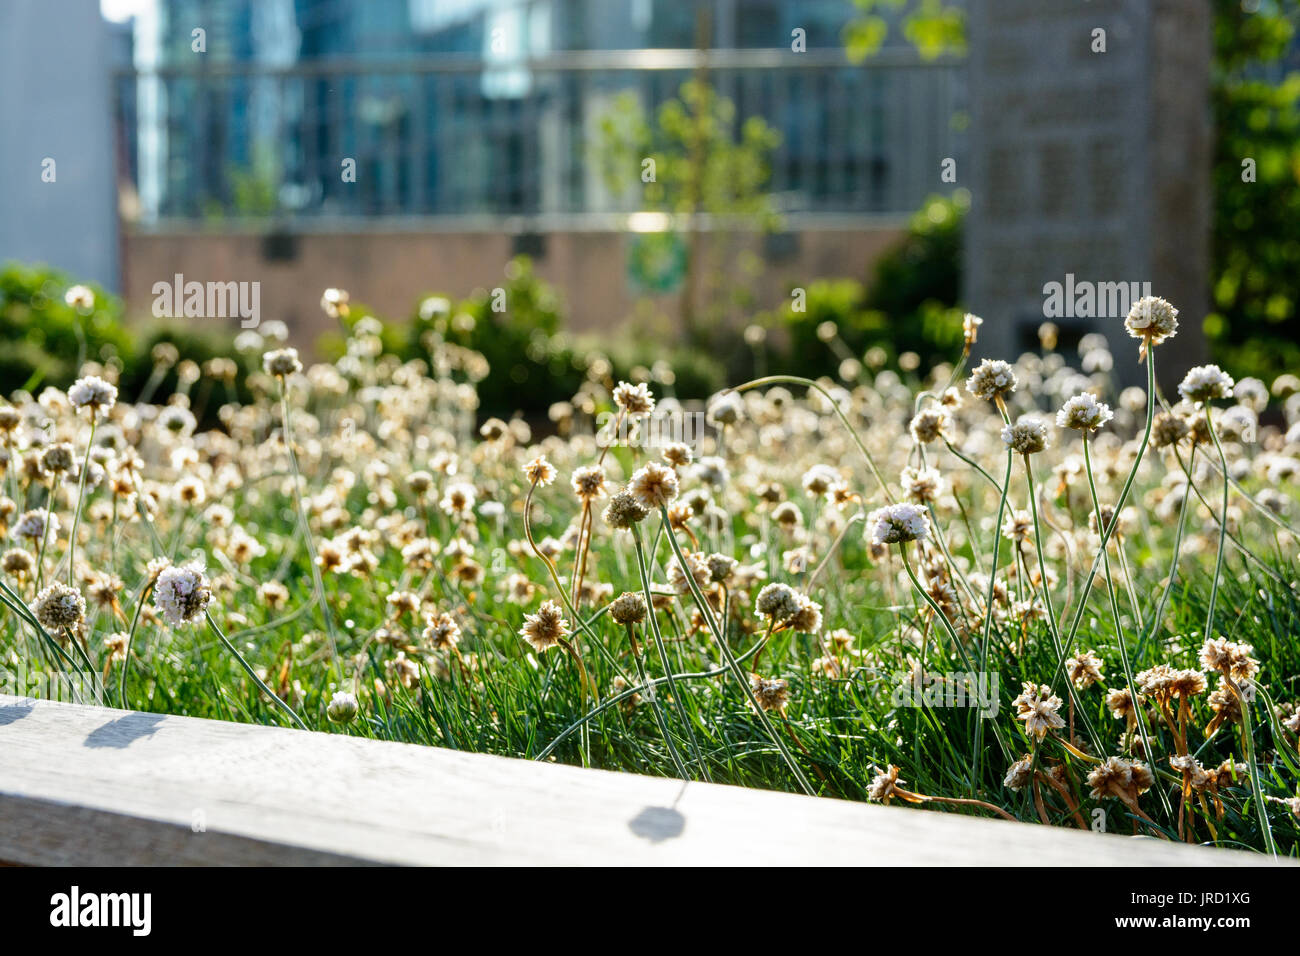 Backlighted Little White Flowers And Grass At Sunset In An Urban